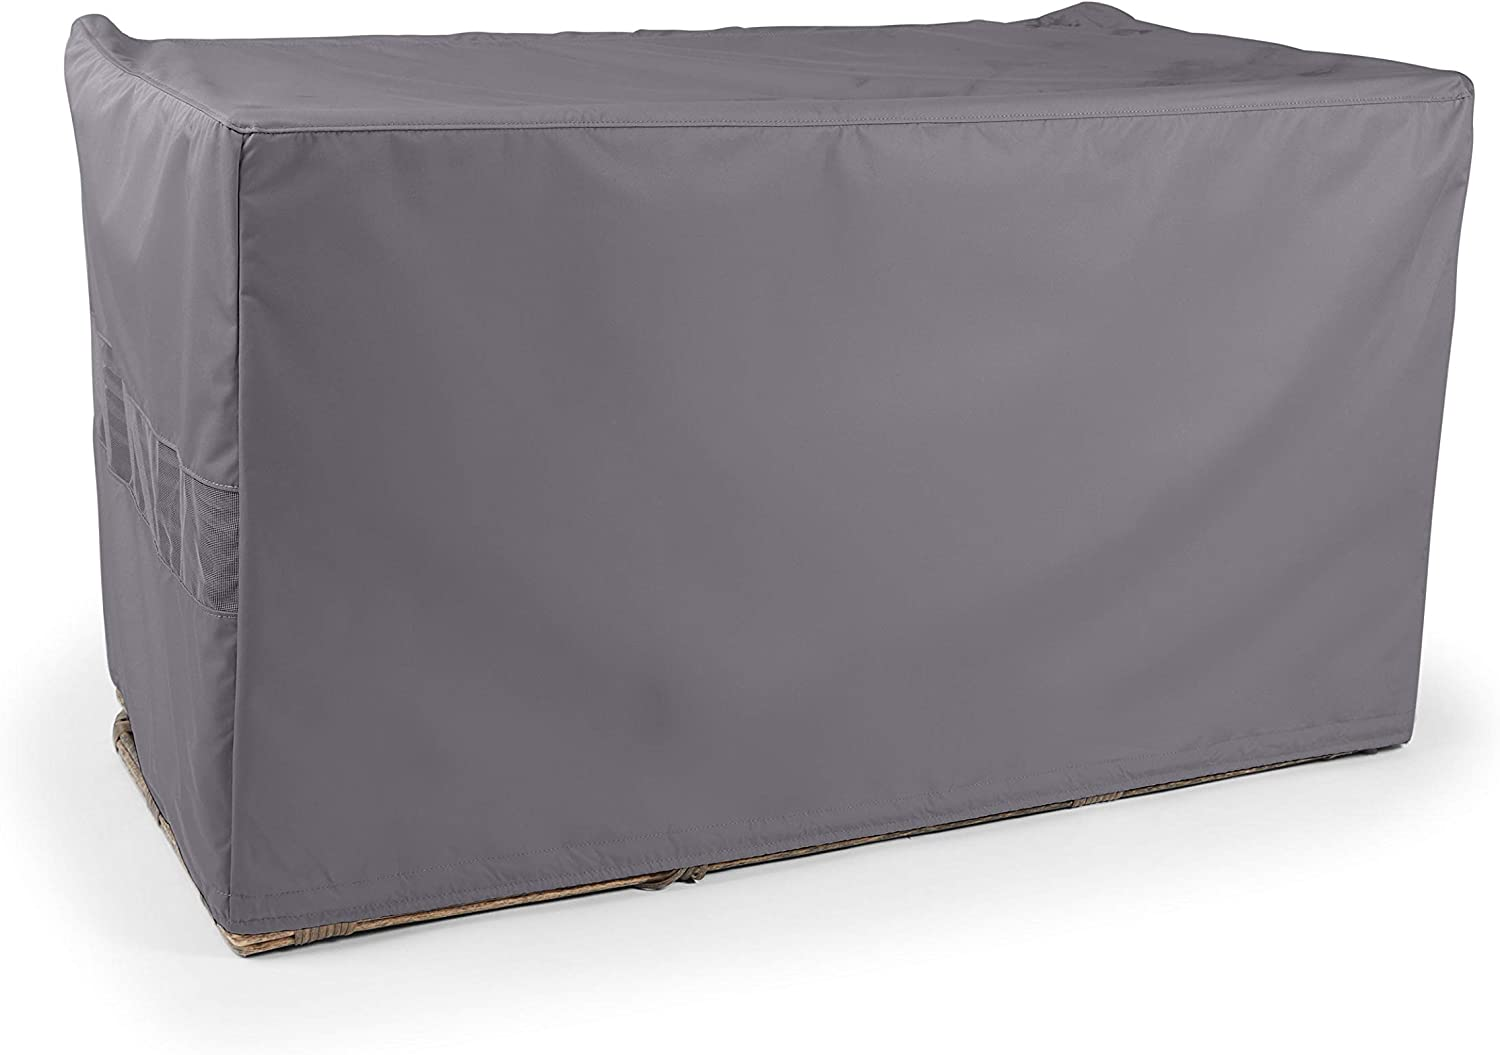 Covermates Modular Sectional Sofa Cover – Heavy Duty Material, Water and Weather Resistant, Patio Furniture Covers - Charcoal